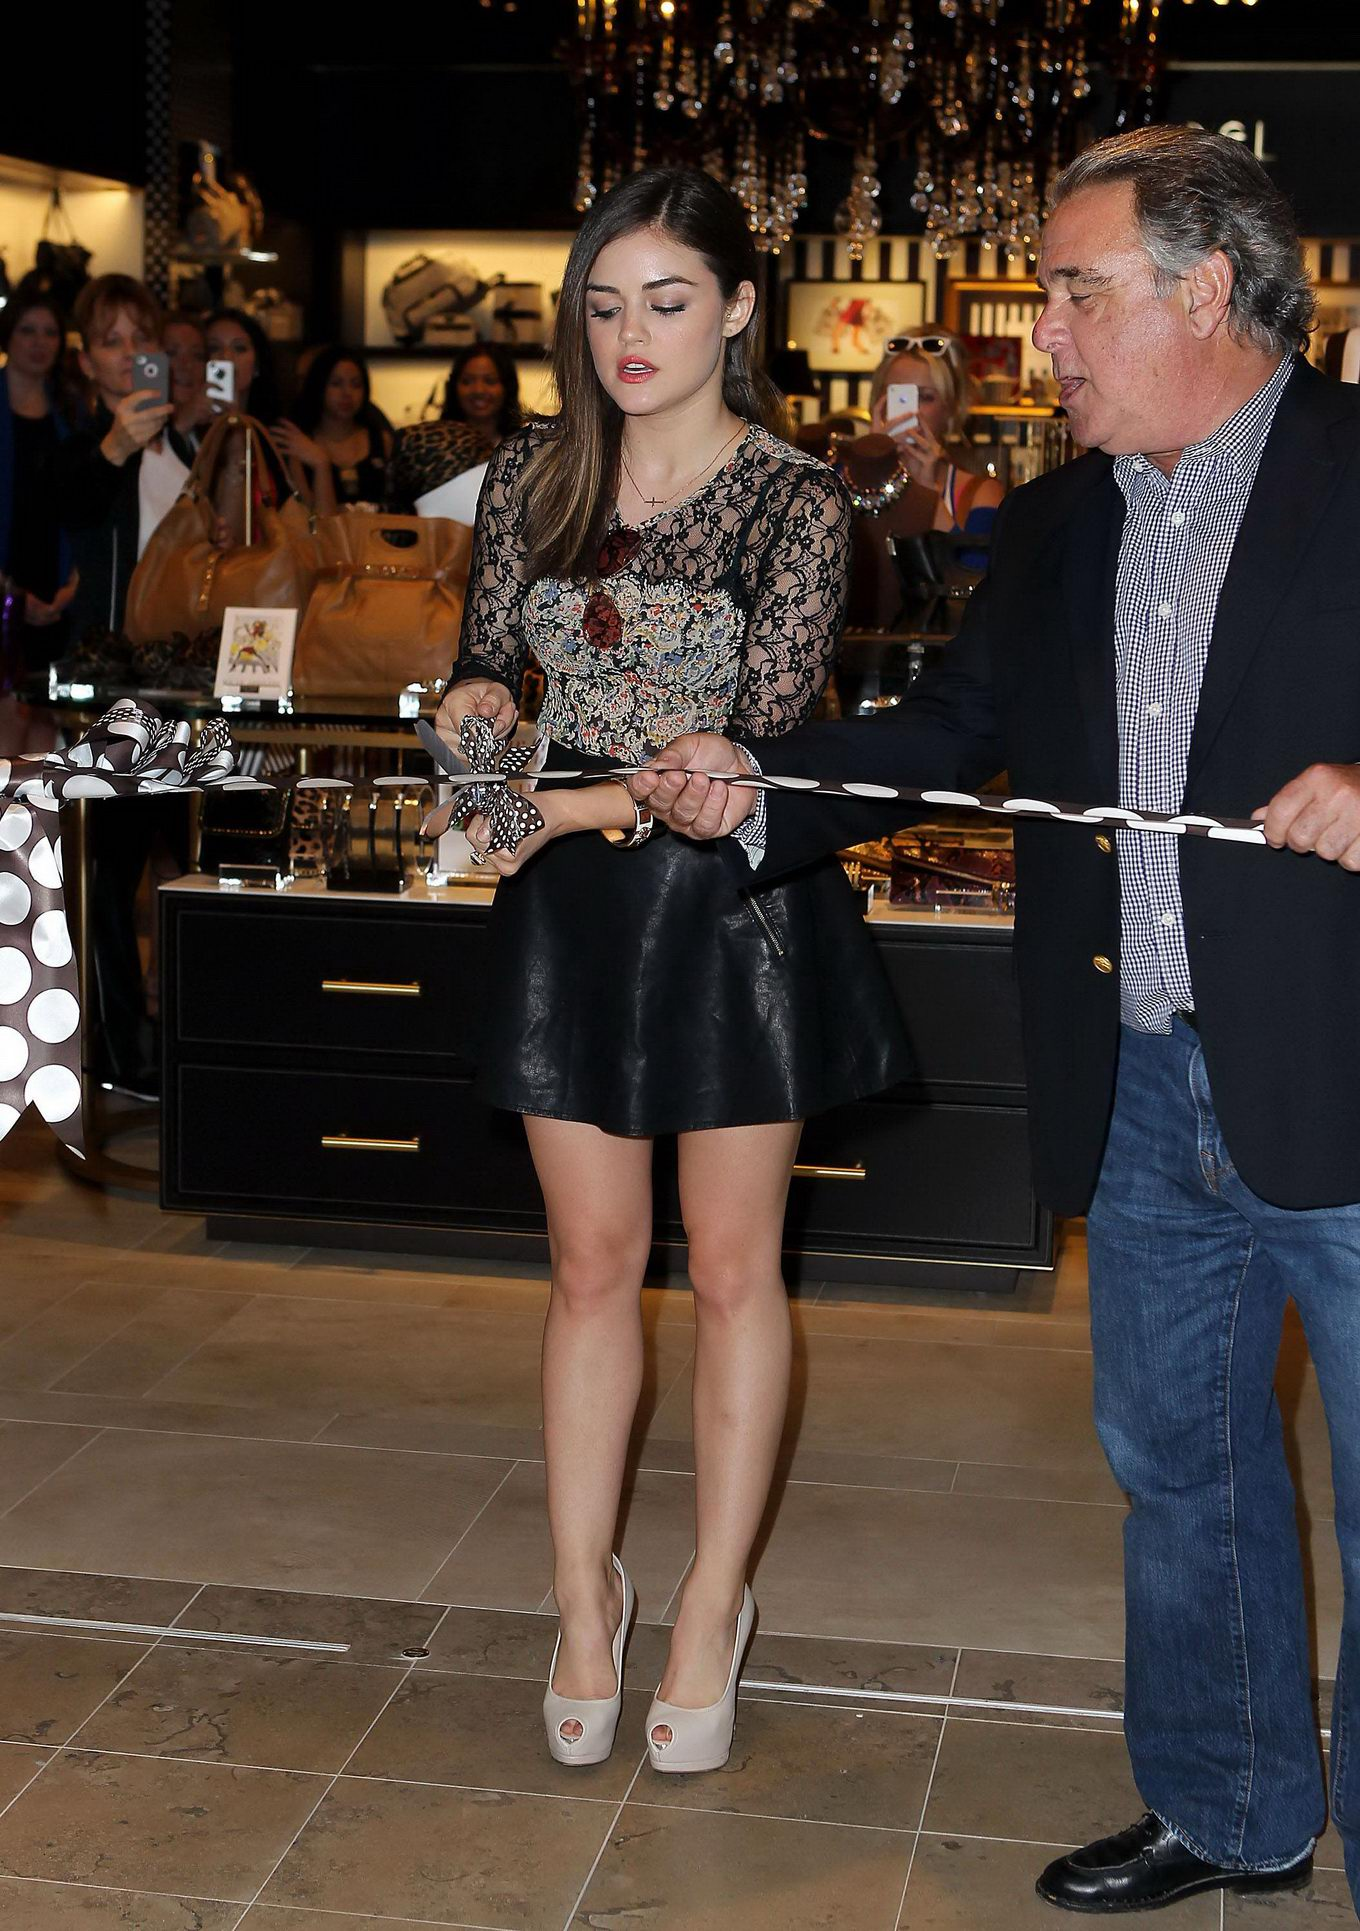 ... skirt opening the Henri Bendel store at Fashion Show Mall in Las Vegas